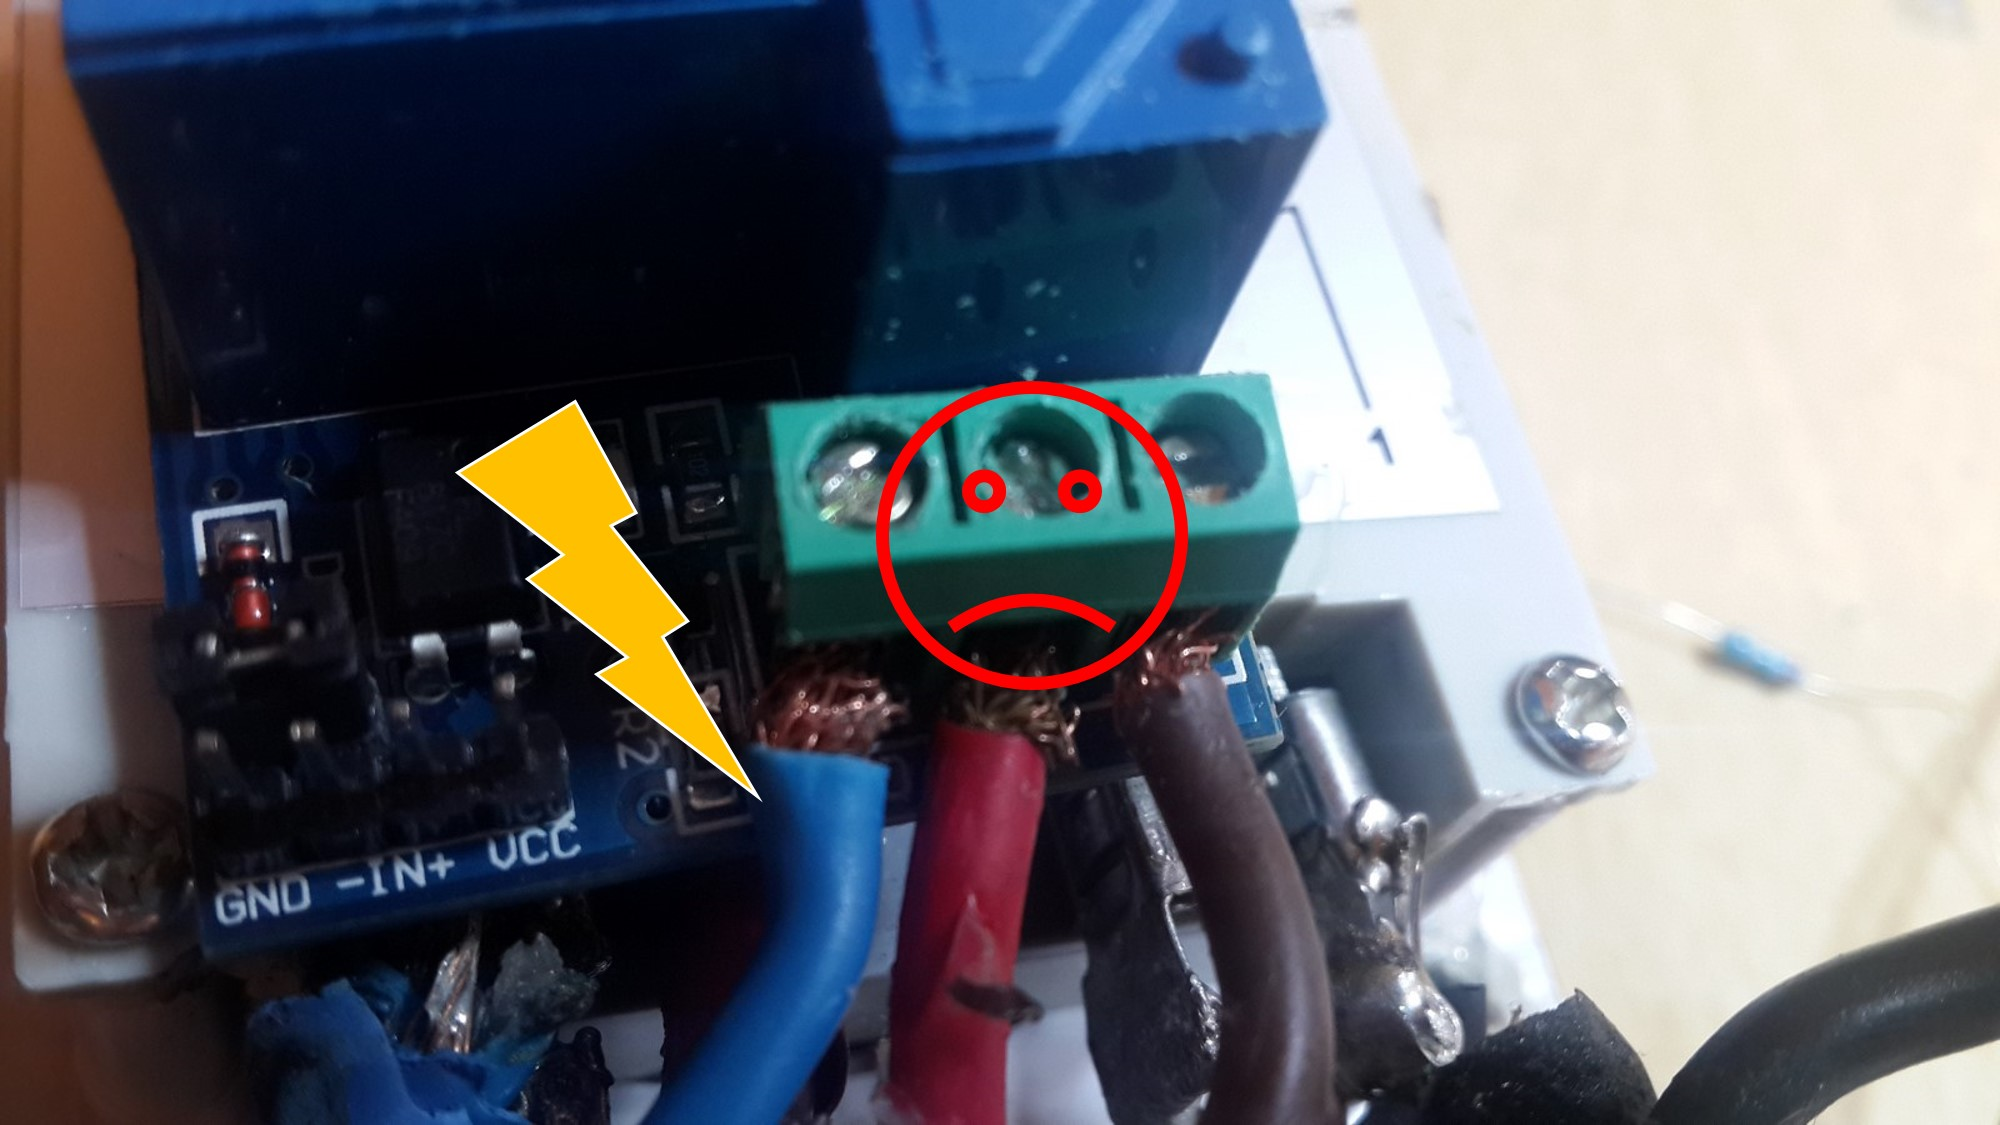 Relay exposed wires